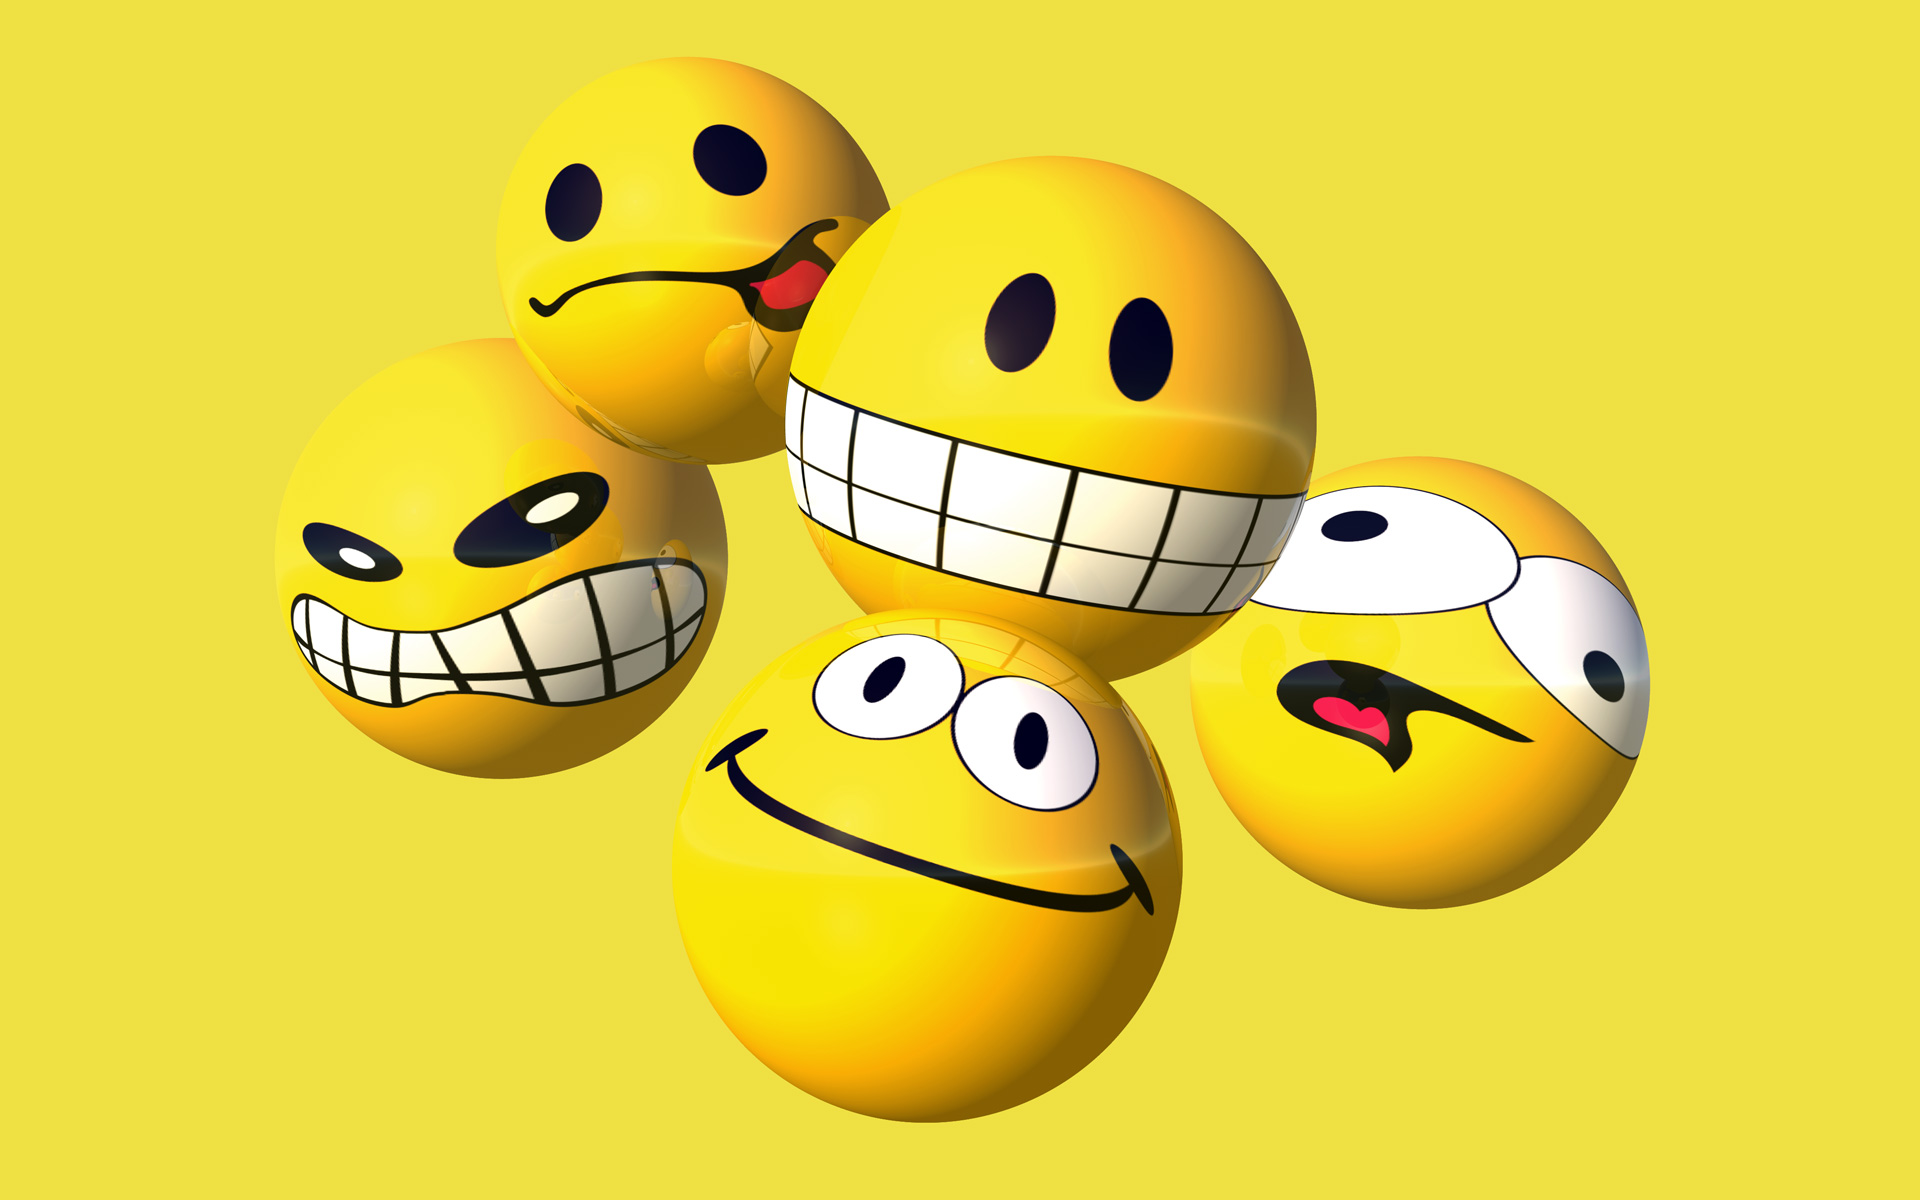 desktop themes attack gallery posted smiley 1920x1200